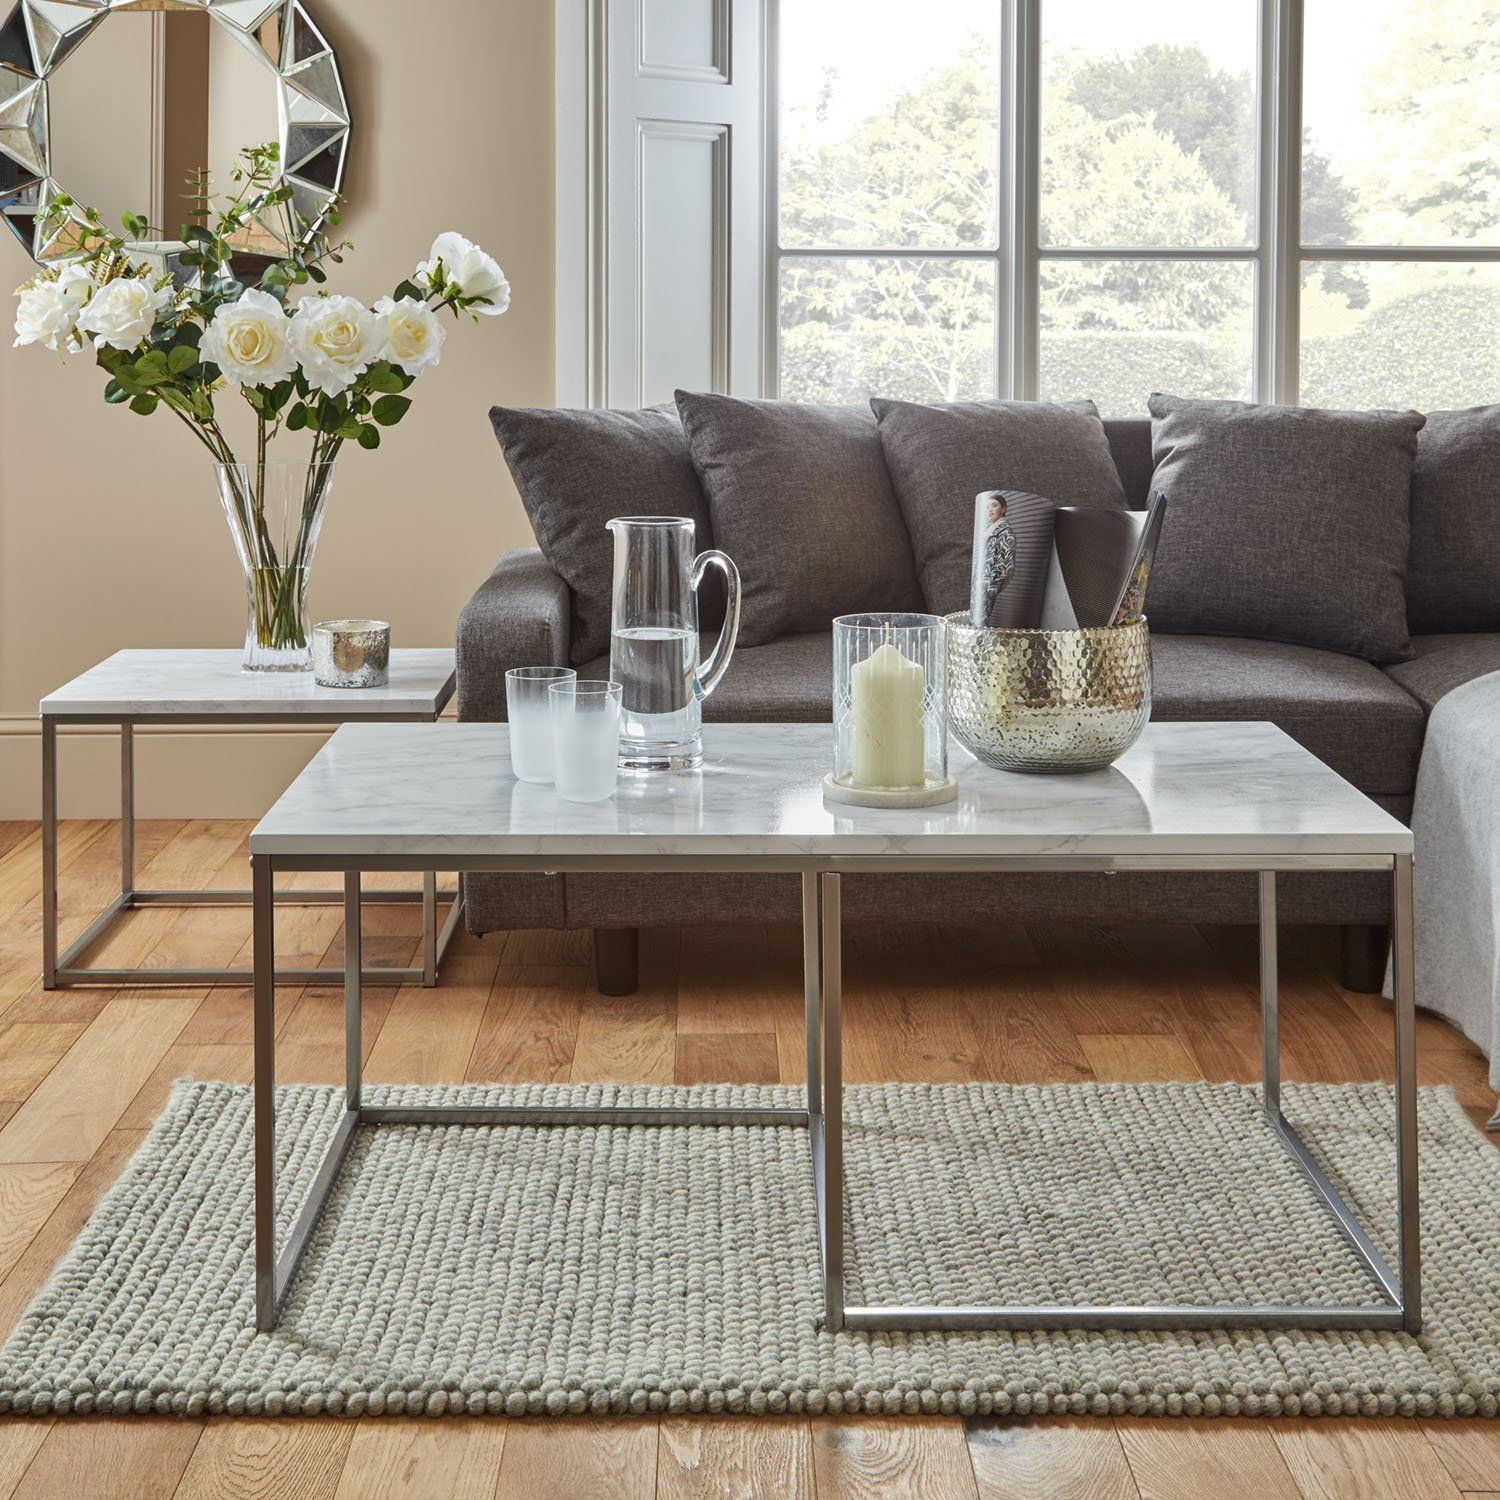 Jay Coffee Table - Marble effect and chrome - Laura James